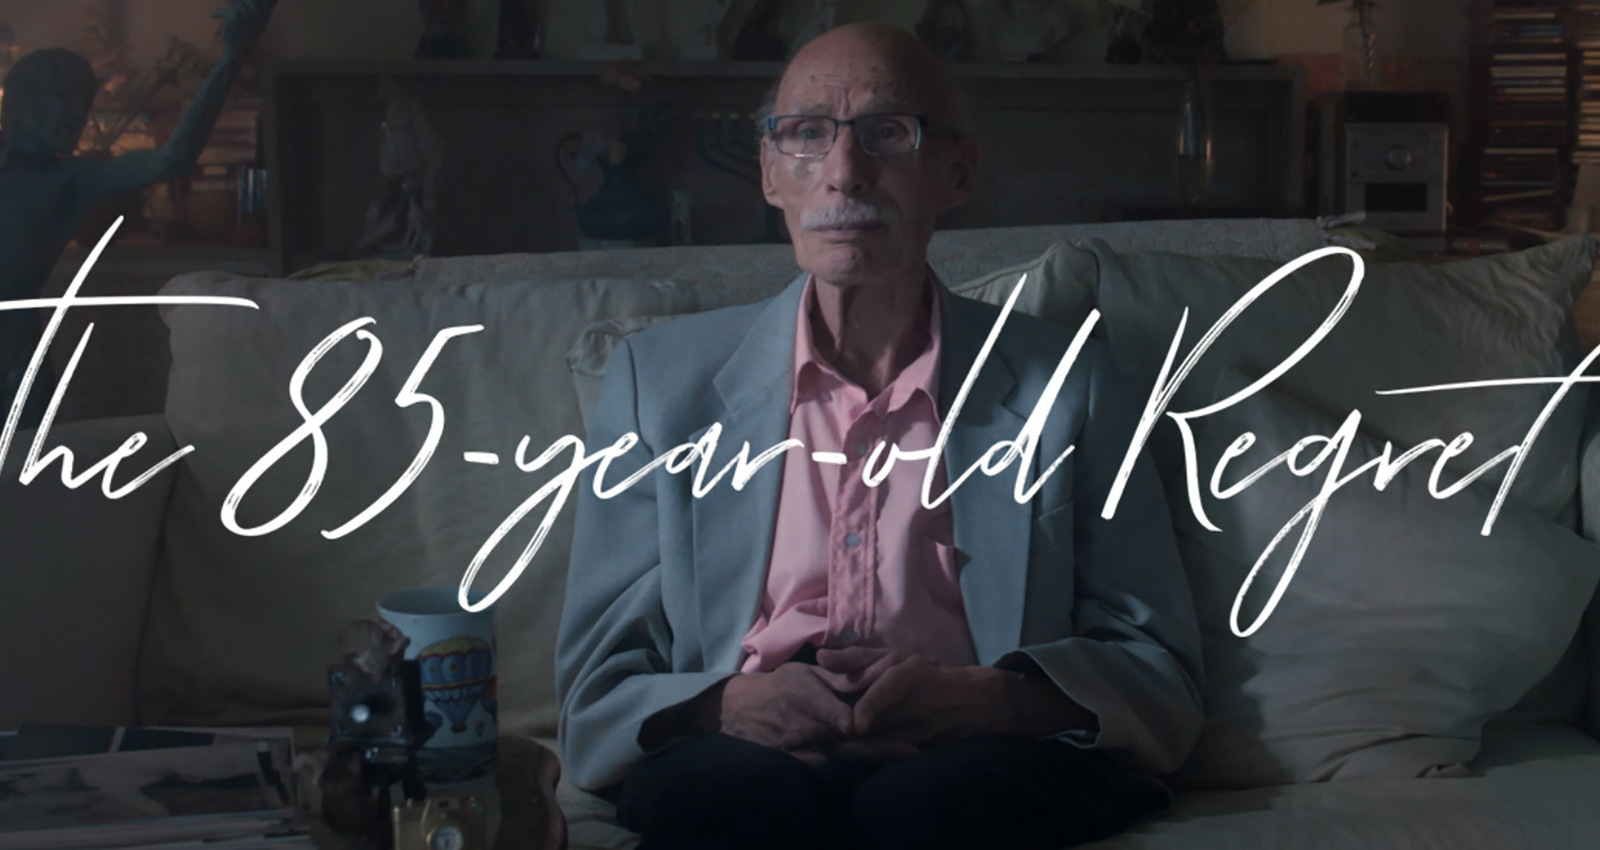 5 Gum, The 85-Year-Old Regret